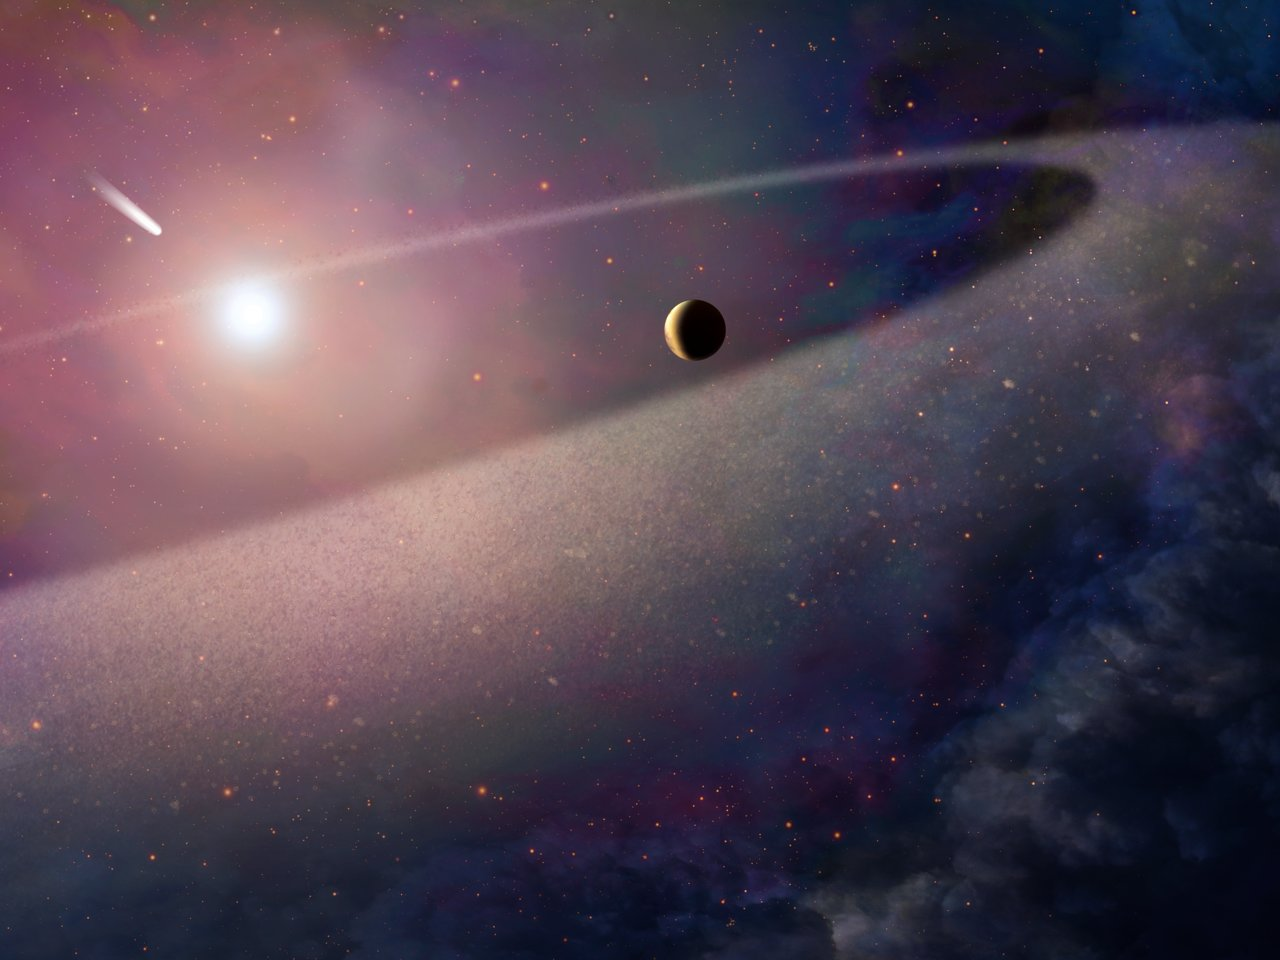 Science Release: Hubble finds big brother of Halley's Comet ripped apart by white dwarf